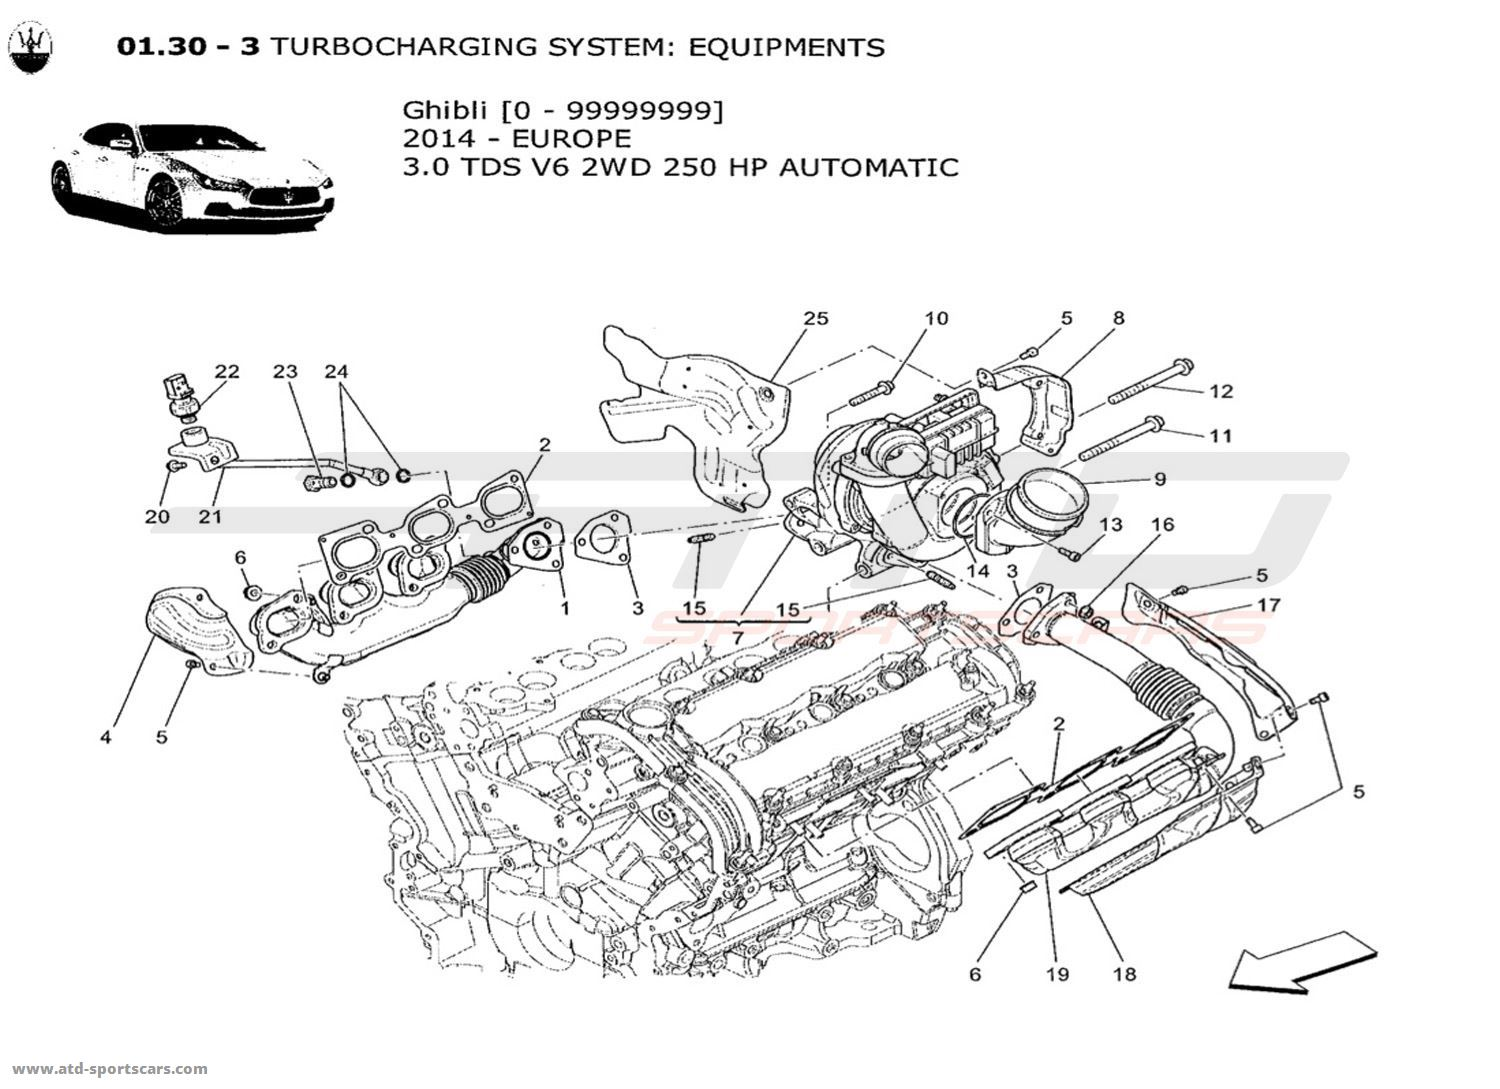 Toyota Rav4 Headlight Wiring Diagram additionally 5h6qx Toyota Camry Se 2003 Toyota Camry Use Cigarette furthermore Discussion T17815 ds681545 moreover Cadillac Cts Headlight Wiring Diagram further 3vze Vacuum Line Diagram For Engine. on toyota tundra fuse box diagram 2014